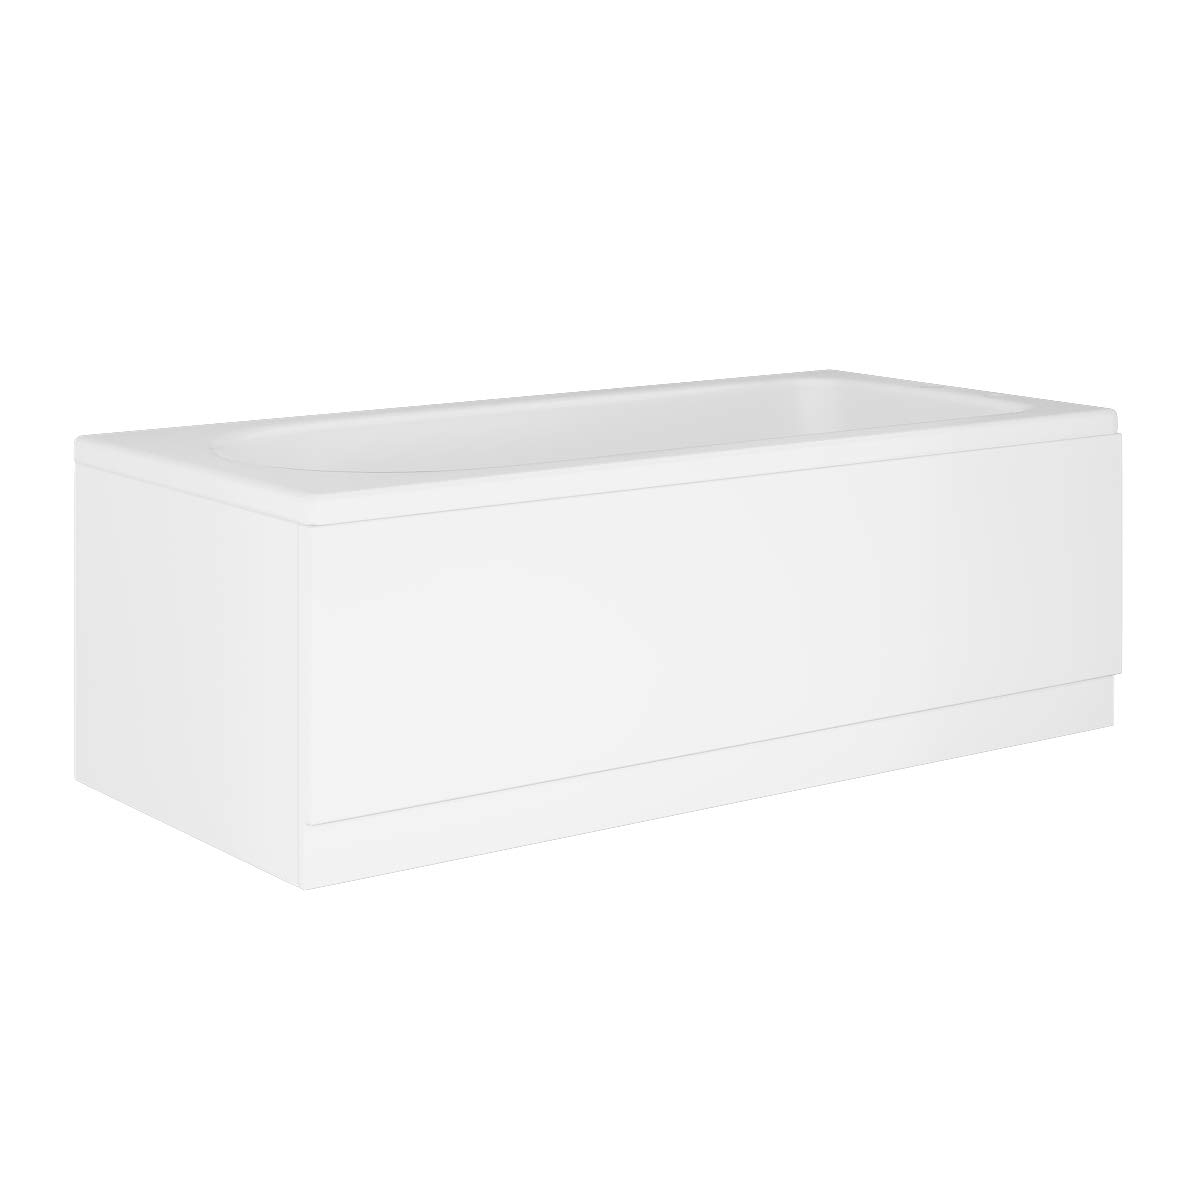 Aquariss Modern Full Bathroom Suite With 1500mm Bath Toilet And Wash Basin Sink Suites